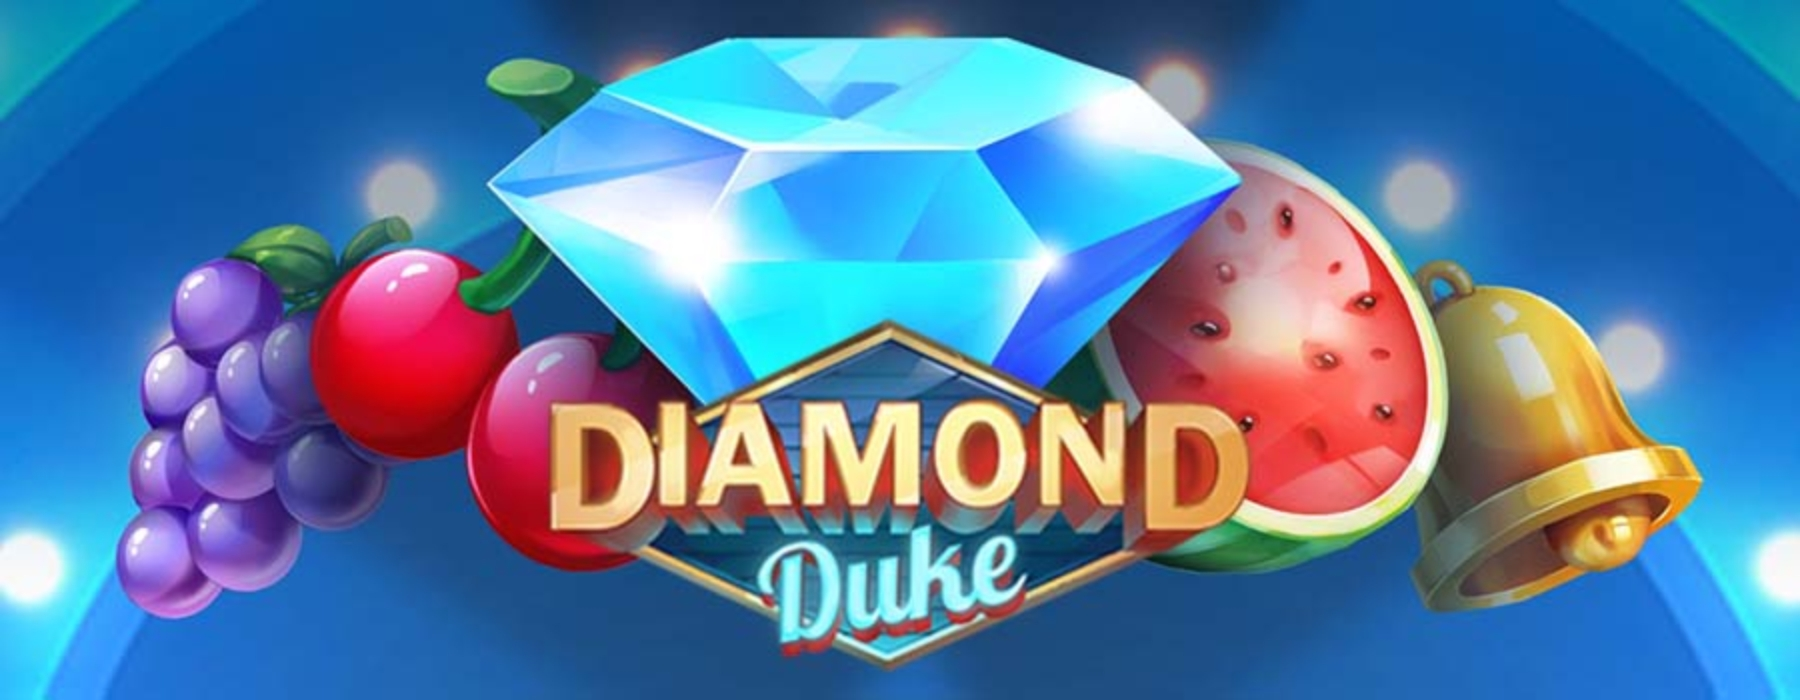 The Diamond Duke Online Slot Demo Game by Quickspin